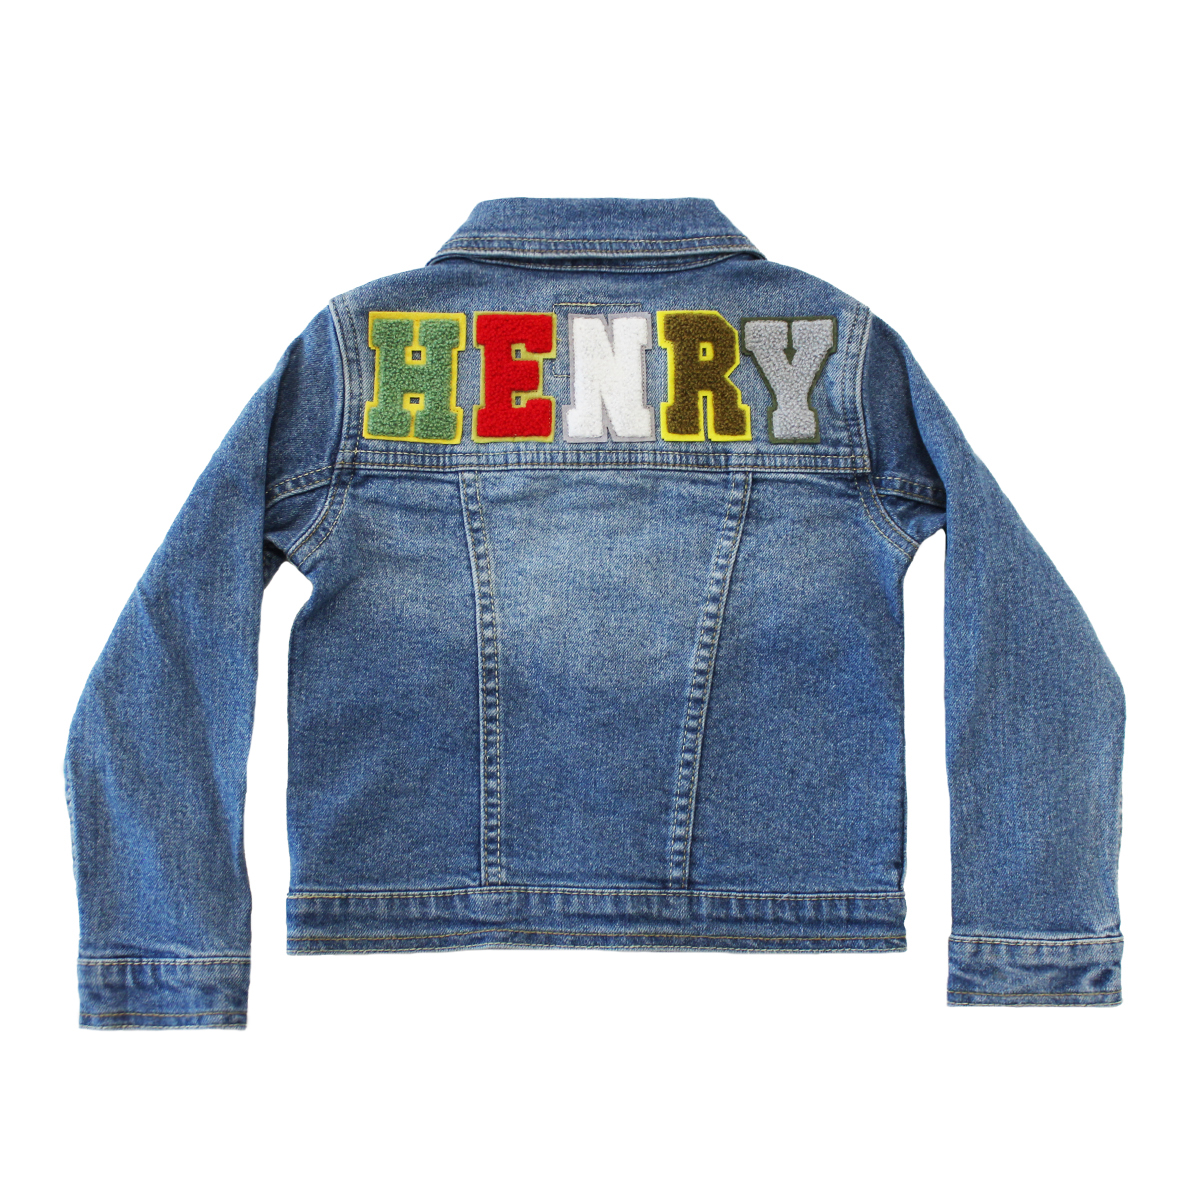 Levi's Personalized Denim Jacket w/ Dark colored alphabet